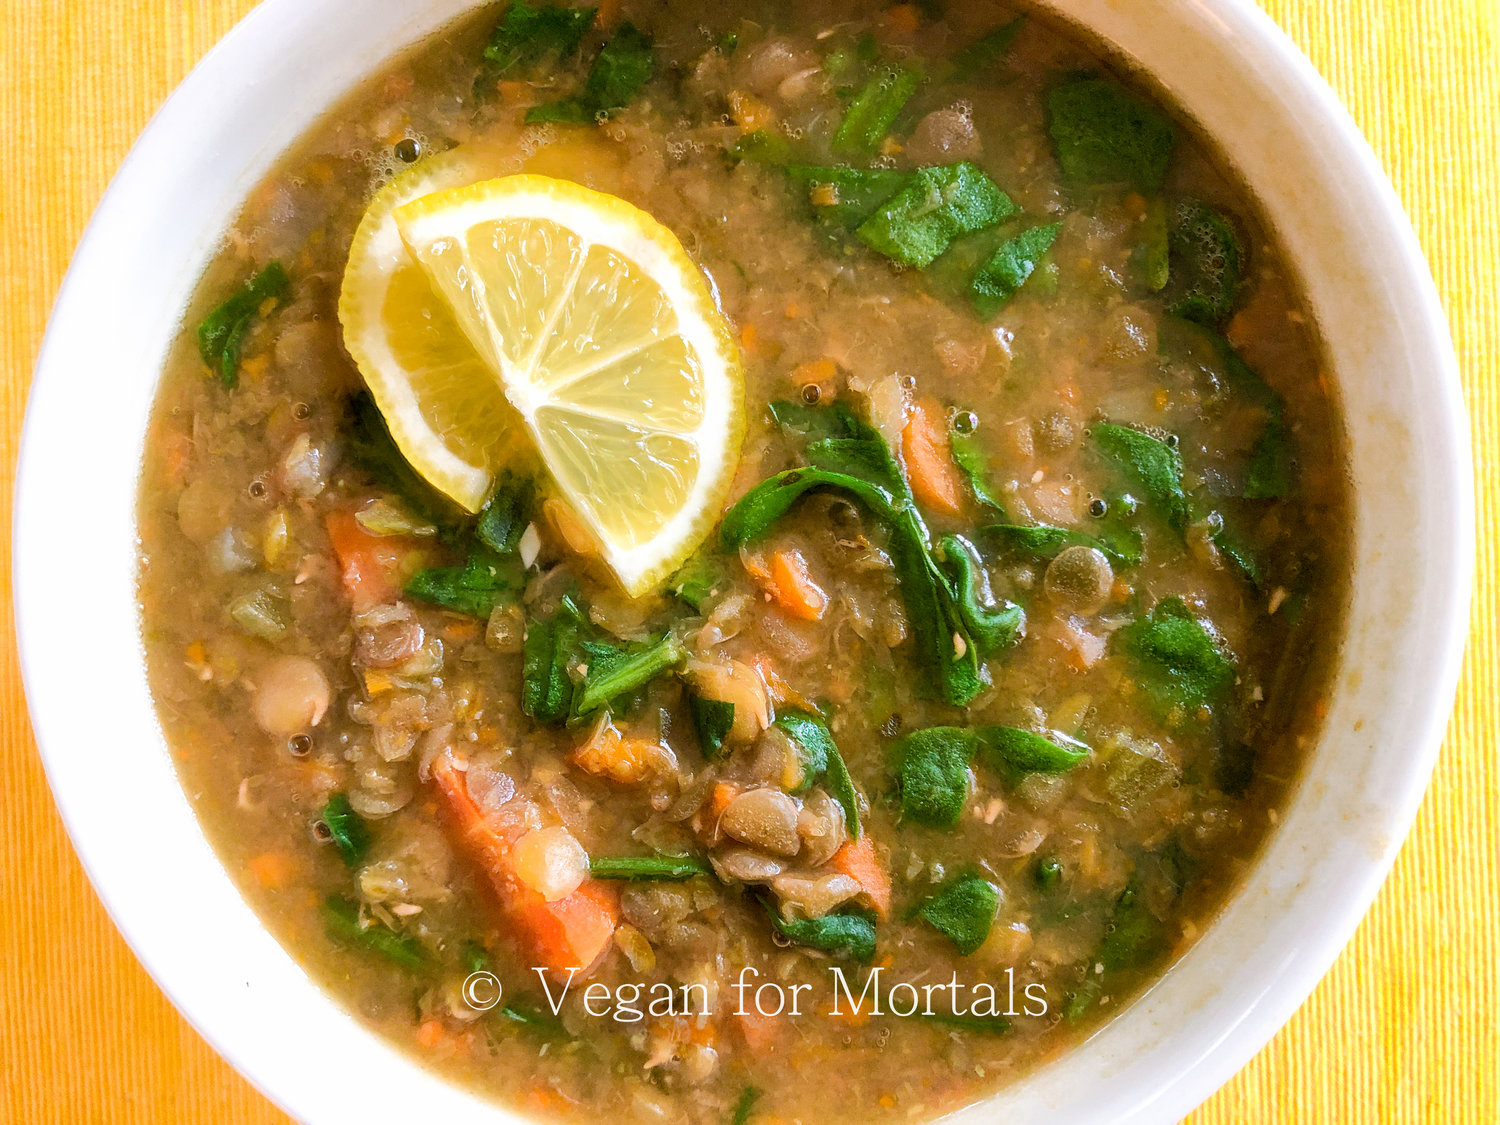 Lentil Soup - This soup is so easy to make and incredibly delicious. Its incredibly filling and super healthy as well! This is a very basic version of the soup, but feel free to add in any other additions you may like: diced tomatoes, potatoes, swiss chard, kale, zucchini, pasta - the additions are endless!